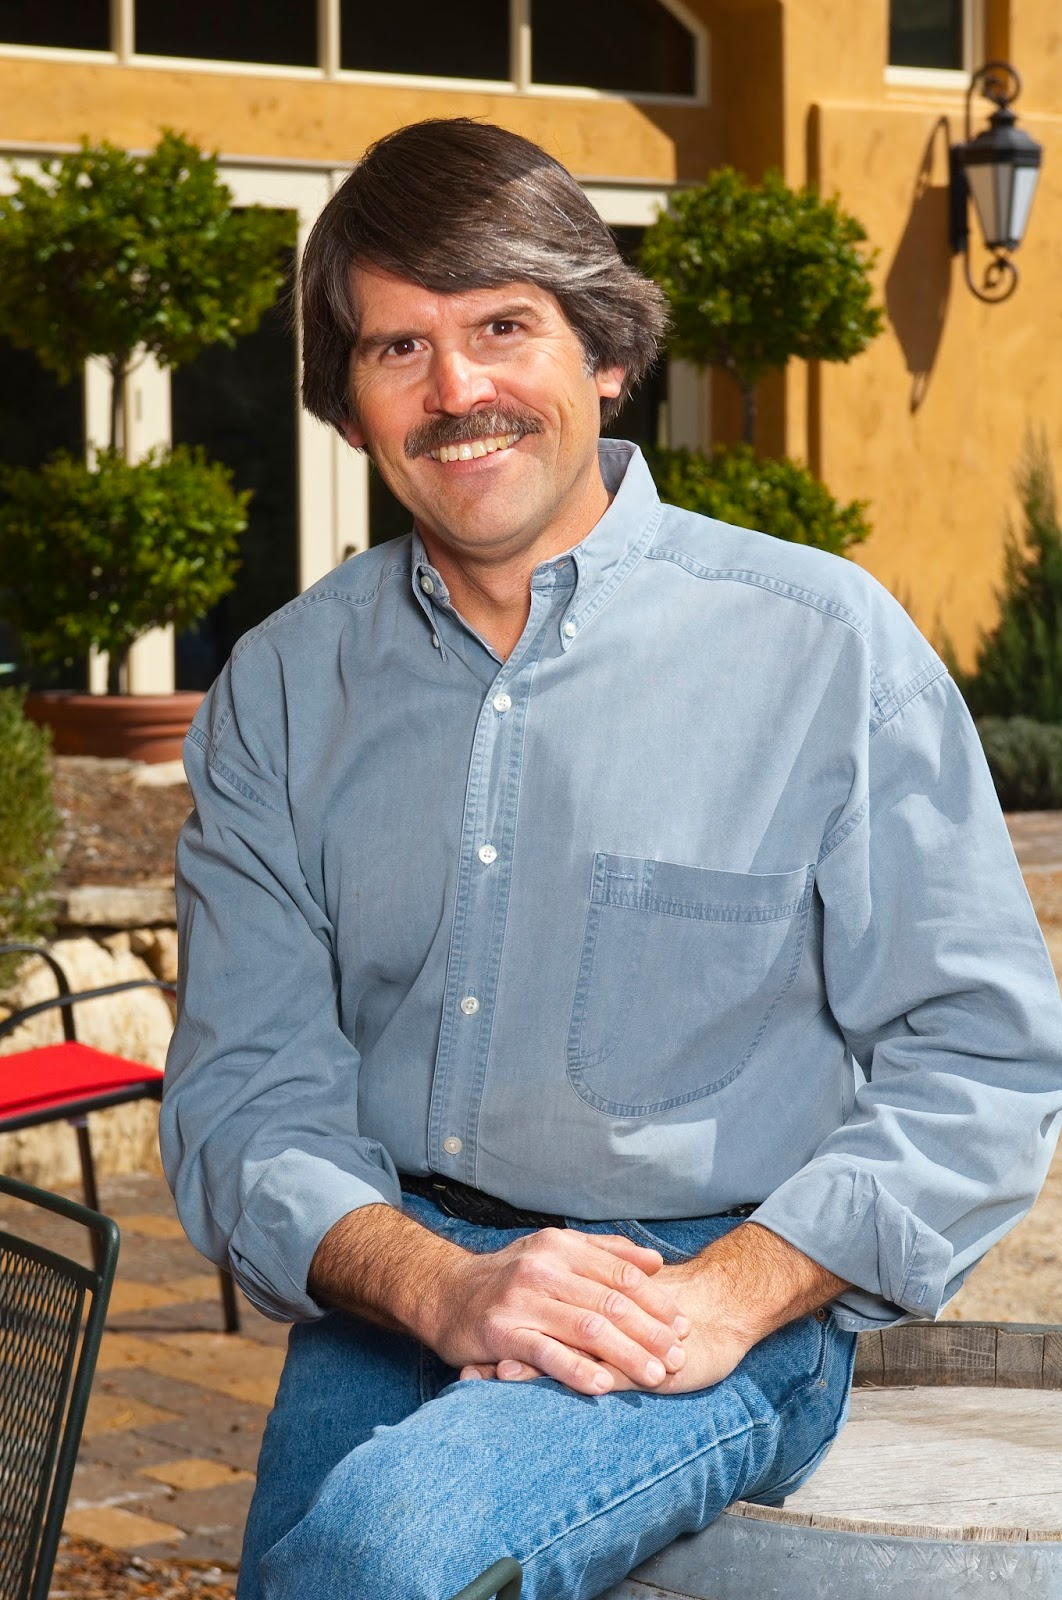 Carl Bowker is the talented winemaker and co-proprietor at Caliza.